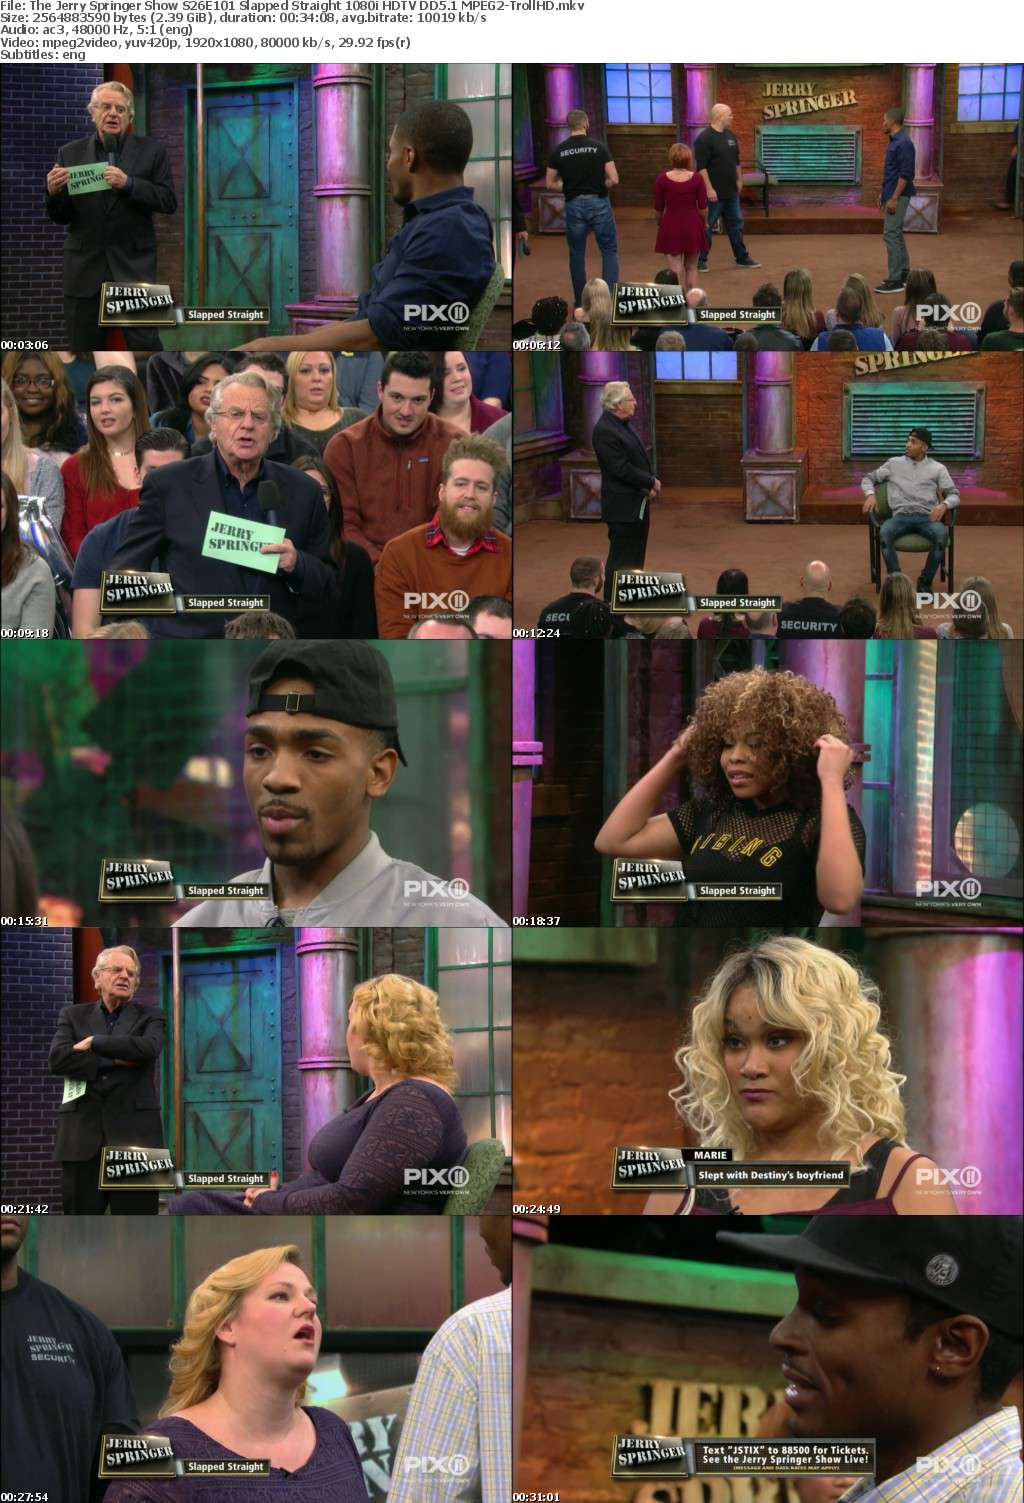 The Jerry Springer Show S26E101 Slapped Straight 1080i HDTV DD5 1 MPEG2-TrollHD - MPEG2